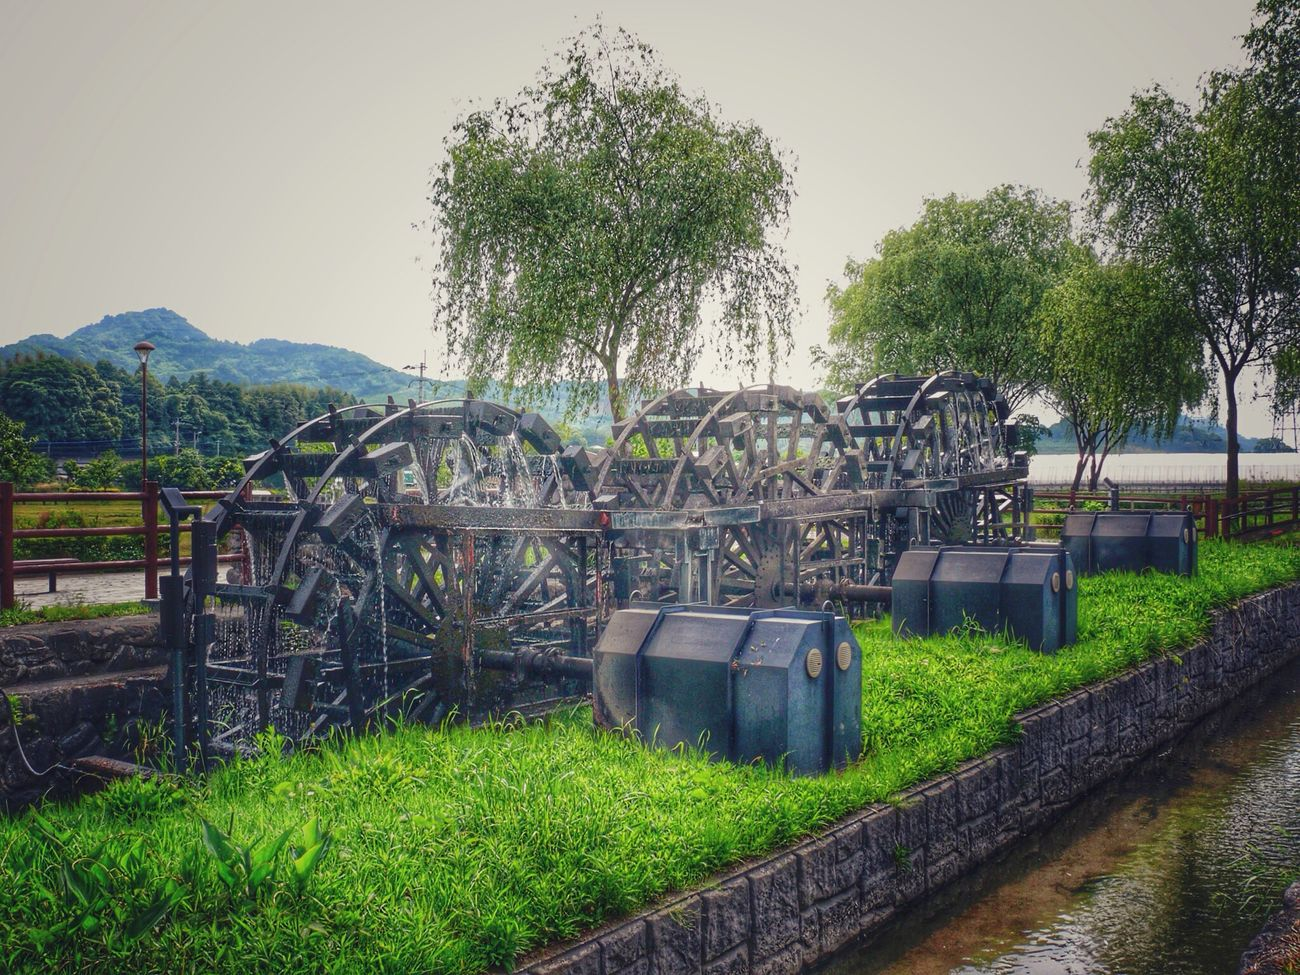 Water Wheel Walking Around Suisha koen Park Asakura city. Fukuoka,Japan Green Green Green!  Snapseed_HDR